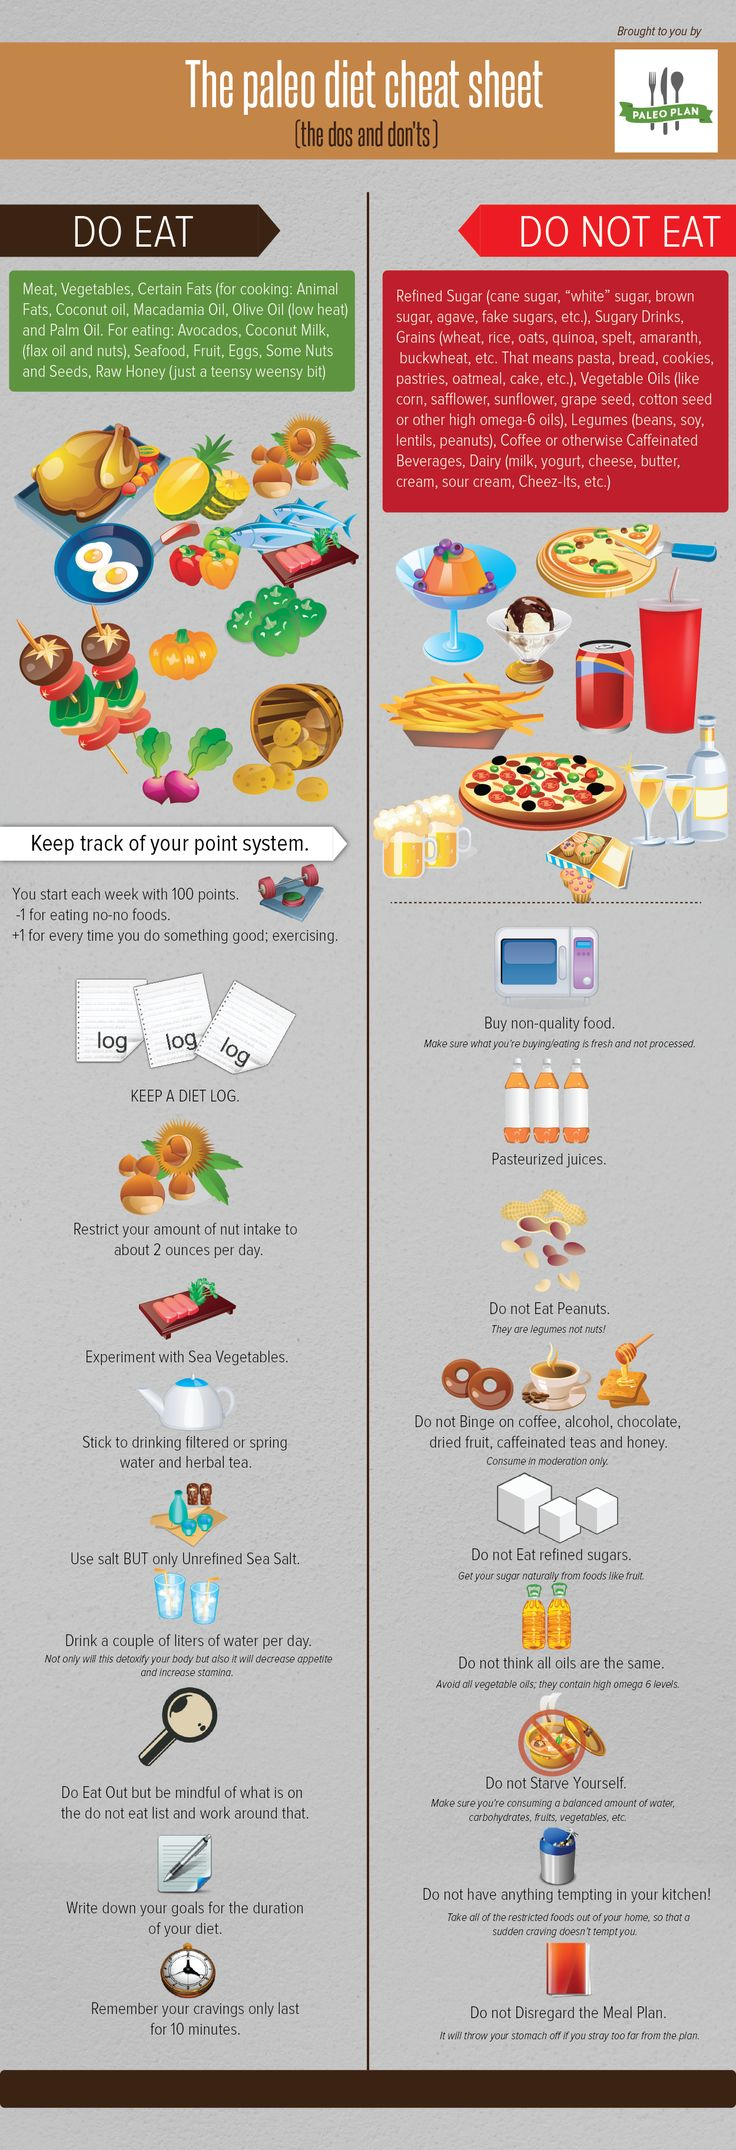 paleo-infographic Loved and Pinned to https://www.downdogboutique.com community Yoga boards